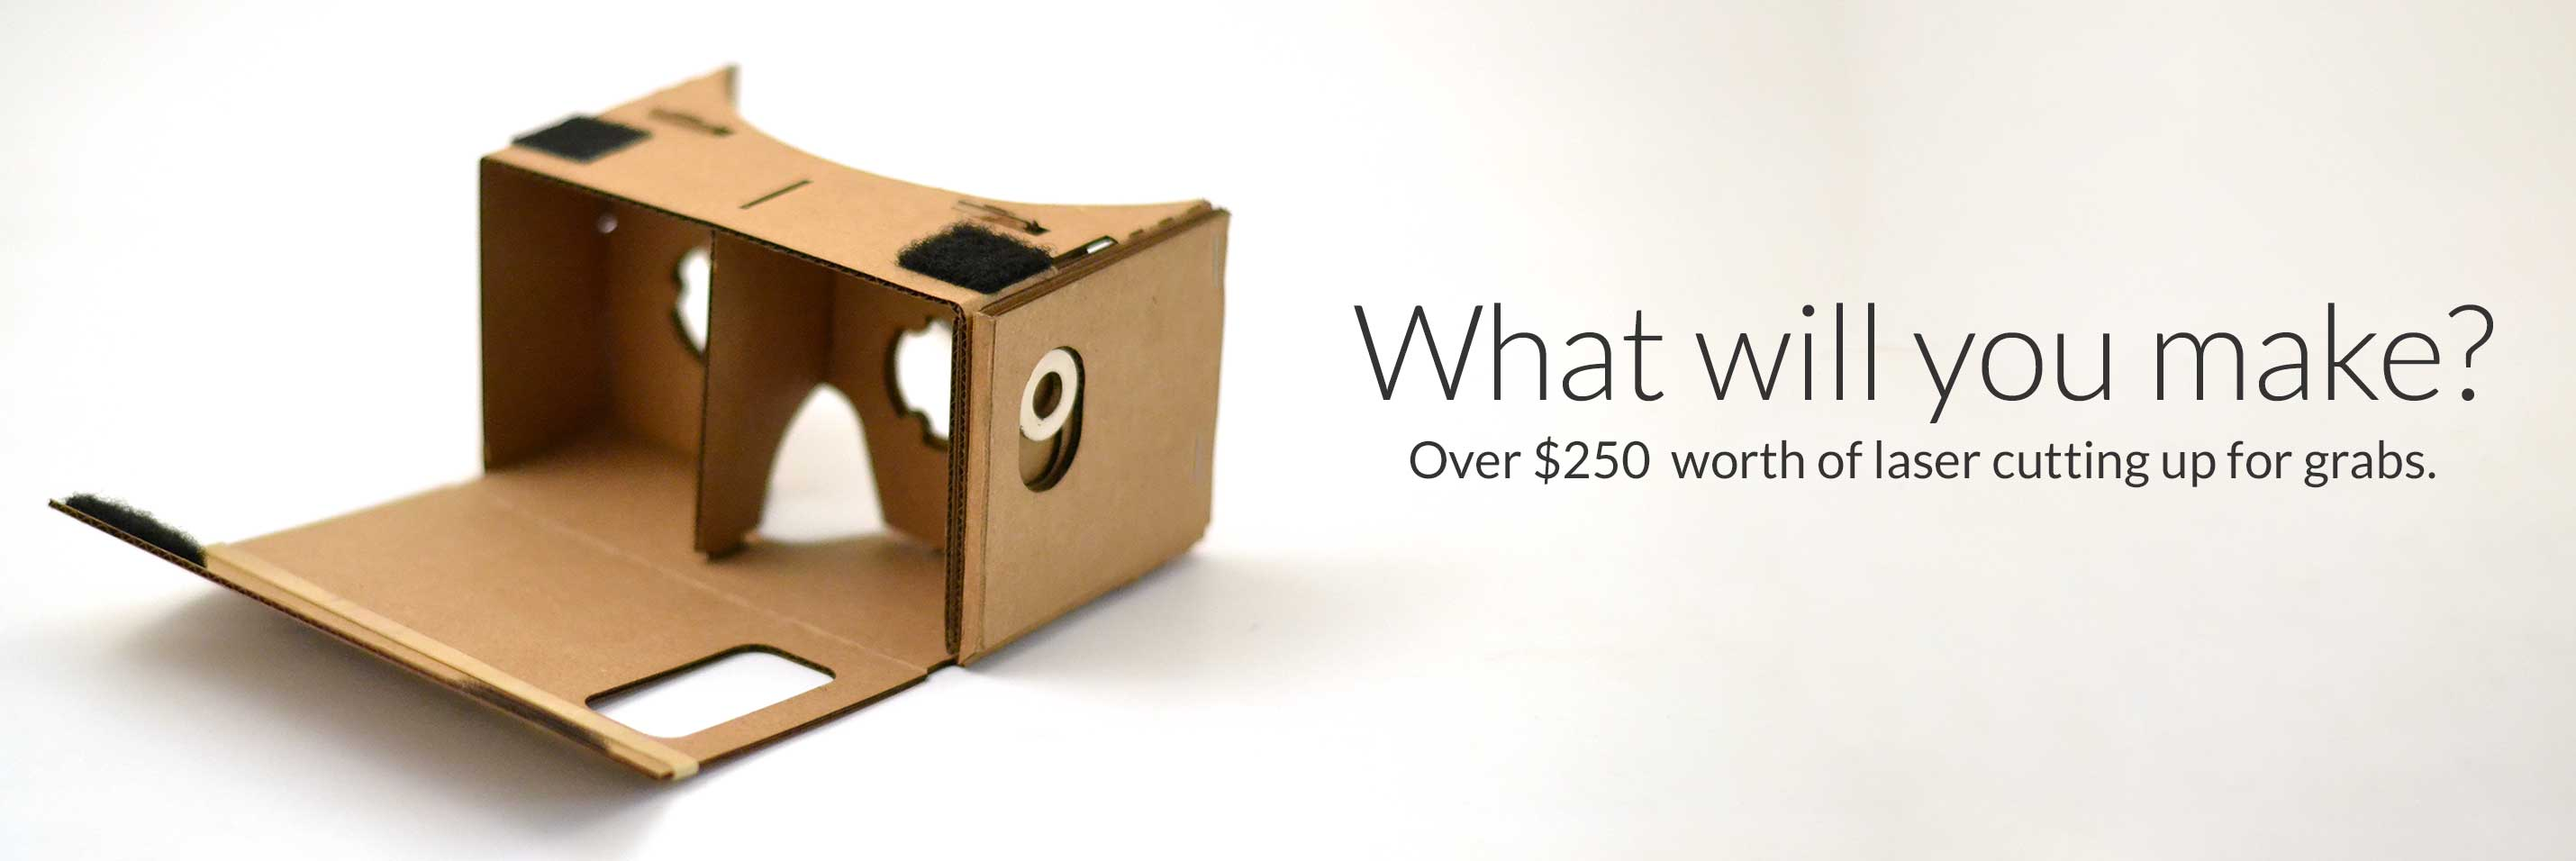 Share Your Google Cardboard Design Idea Win Your Share Of